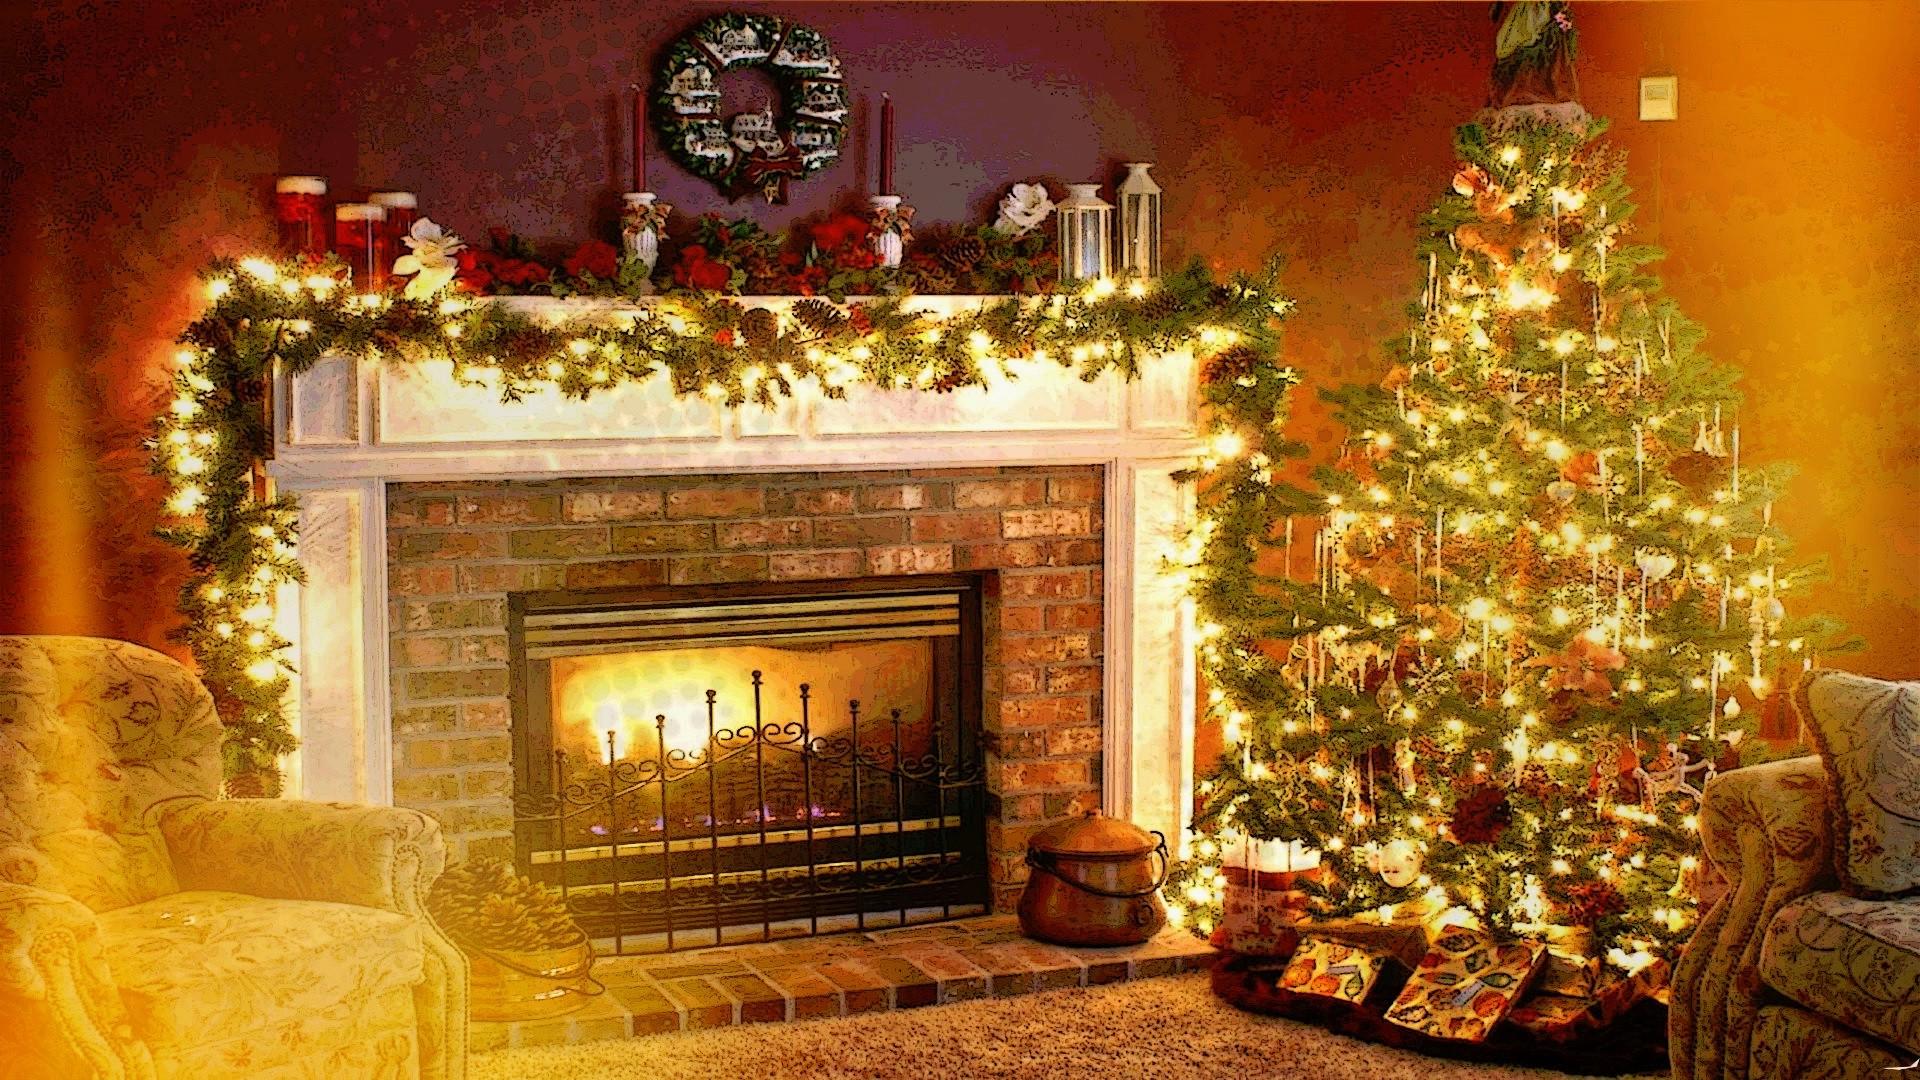 Iphone Wallpapers Hd Zedge Christmas Home Wallpapers Group 83